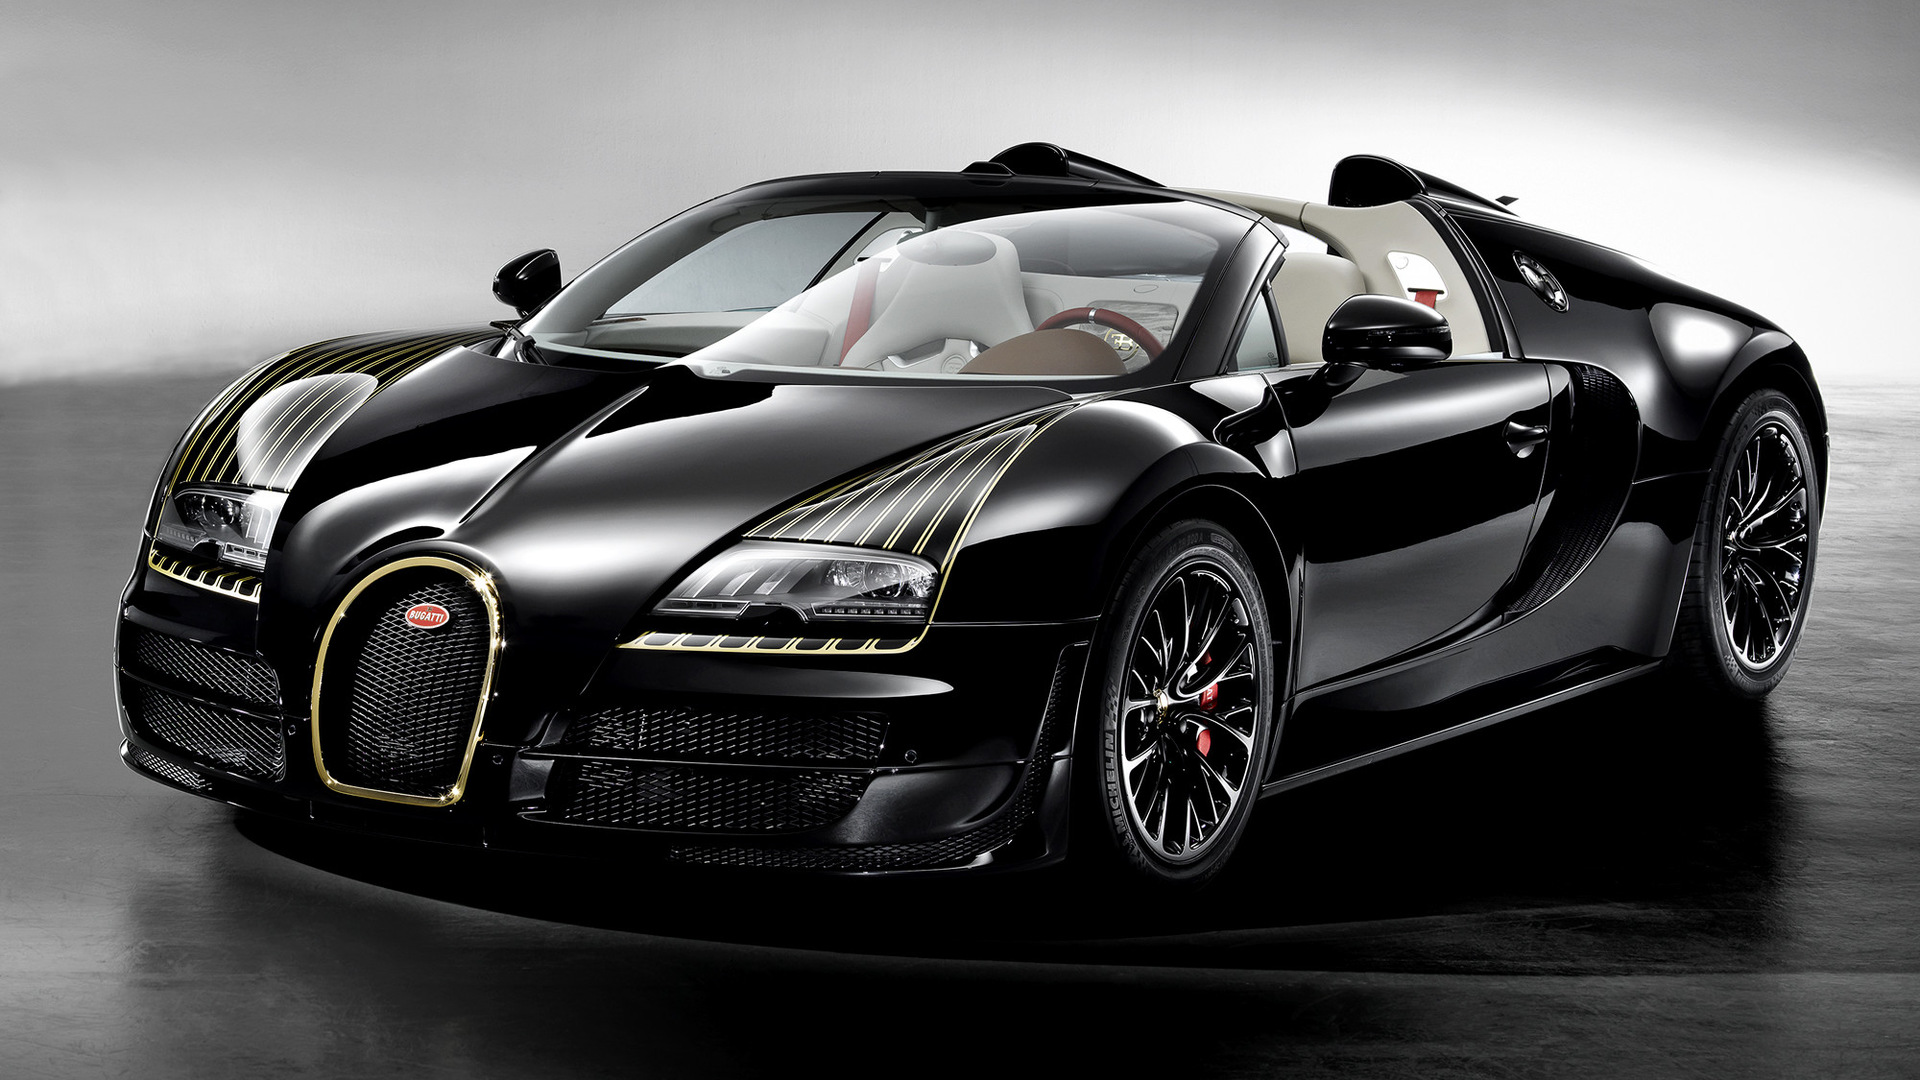 Cockpit Hd Wallpaper Bugatti Veyron Grand Sport Vitesse Black Bess 2014